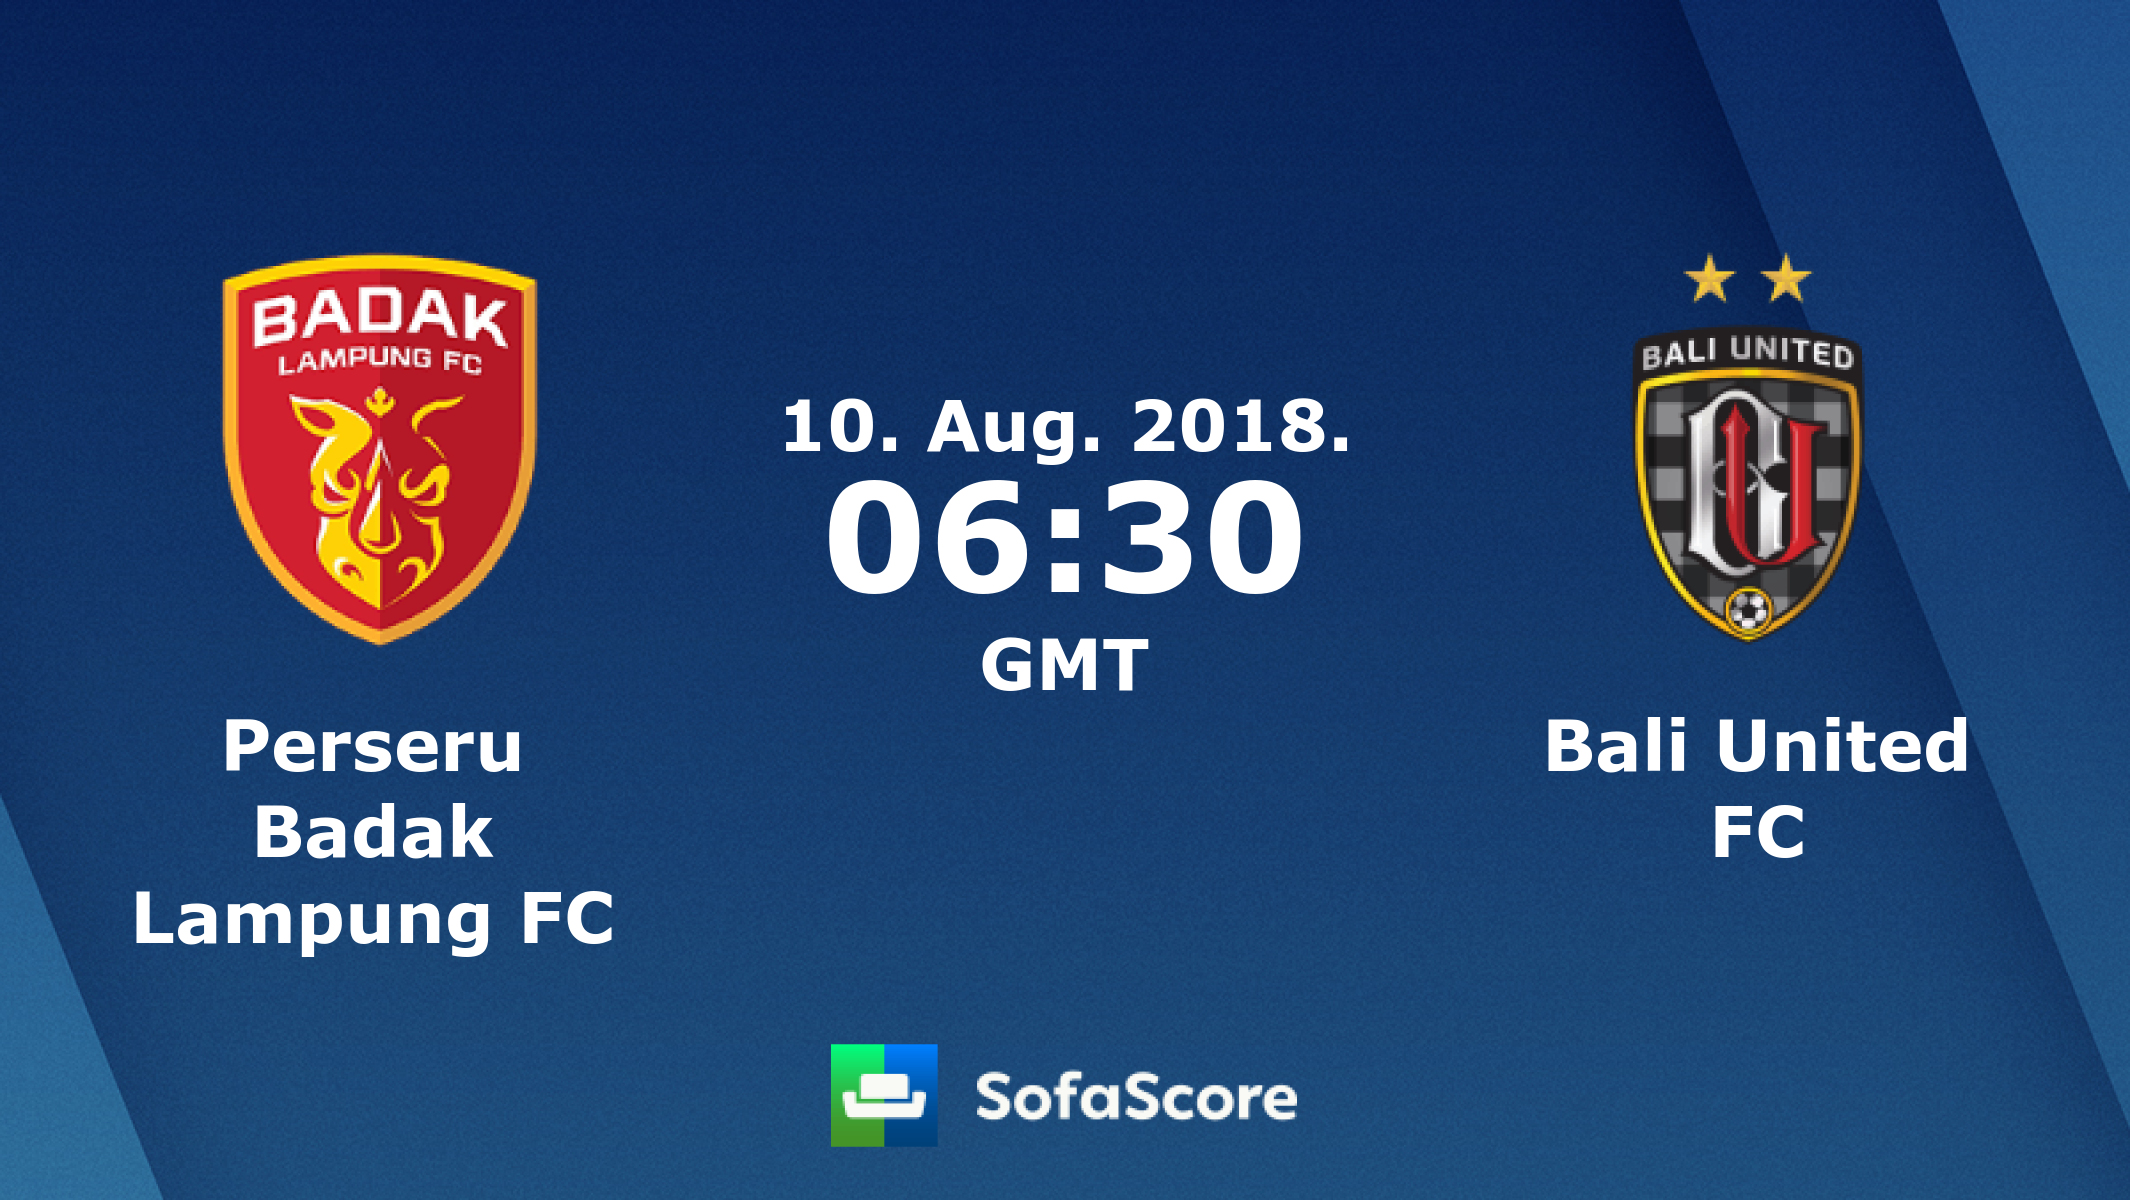 sofascore livescore today high quality leather sectional sofas perseru serui bali united fc live score video stream and